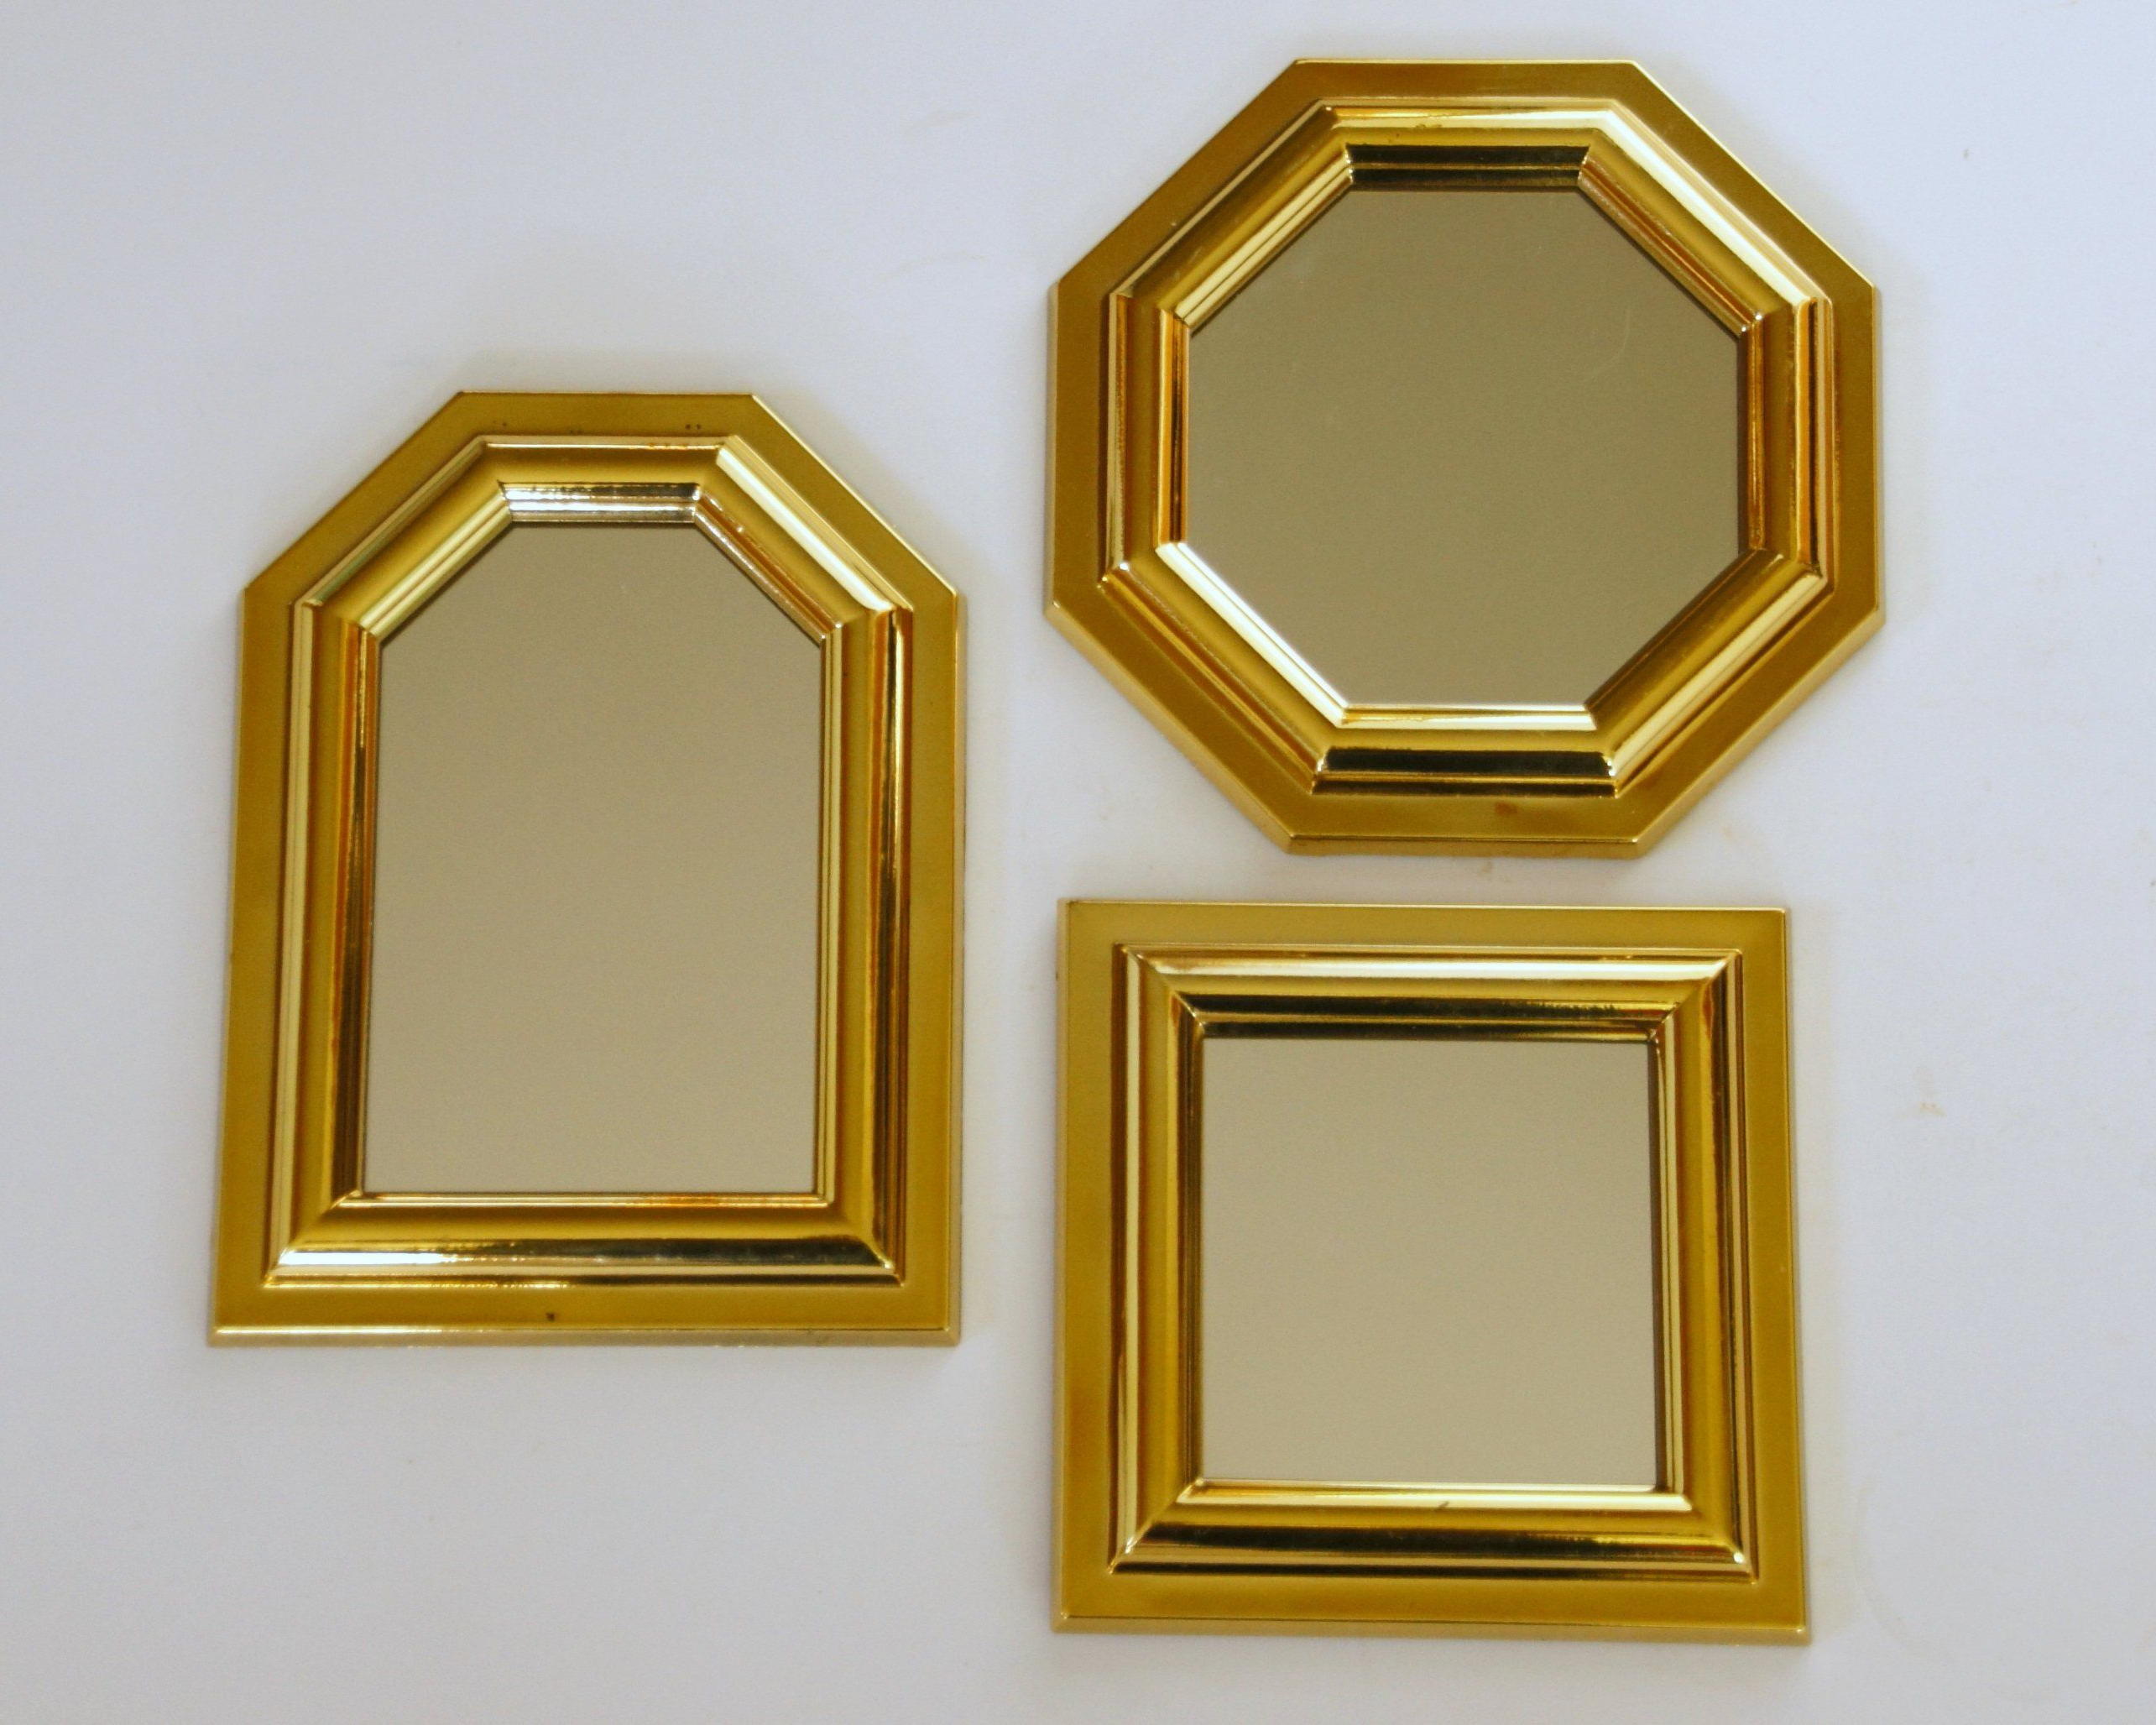 Vintage Mirror Set, Small Gold Mirrors, Burwood Wall Mirrors Throughout Fashionable Small Gold Wall Mirrors (View 3 of 20)